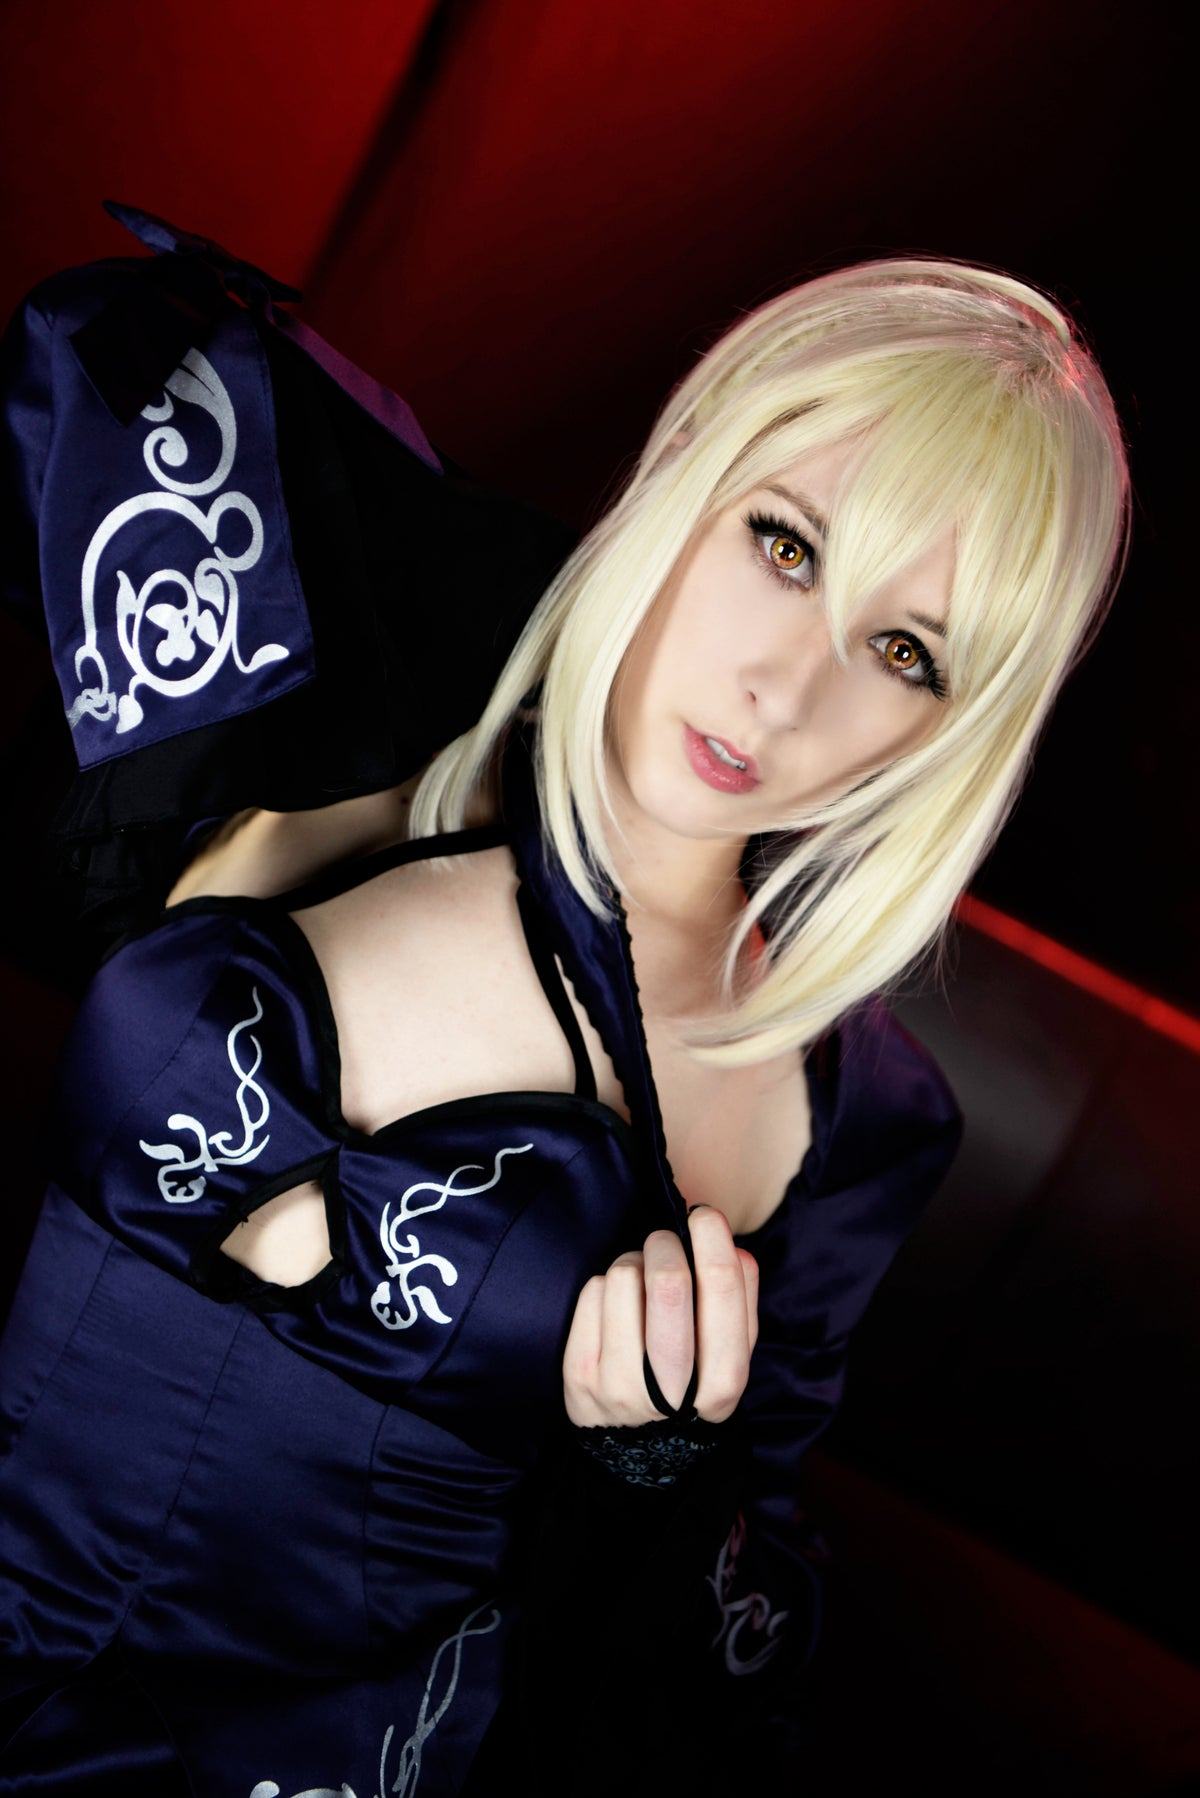 Image of Saber Alter Set